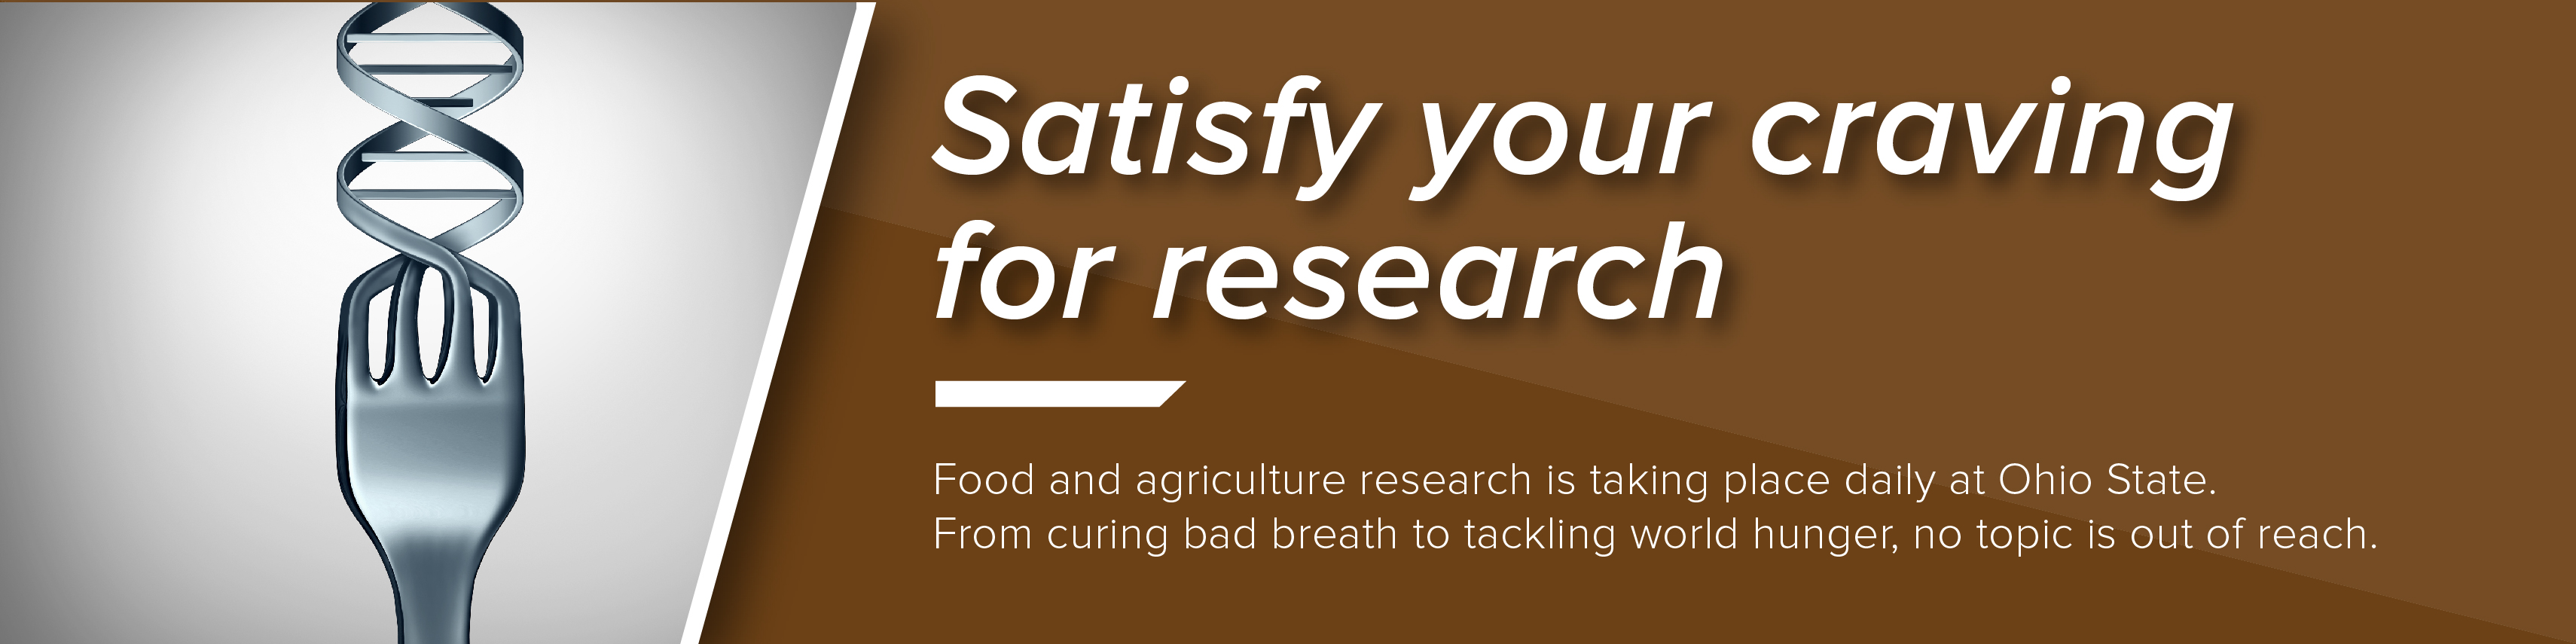 Featured news item: Satisfy your craving for research